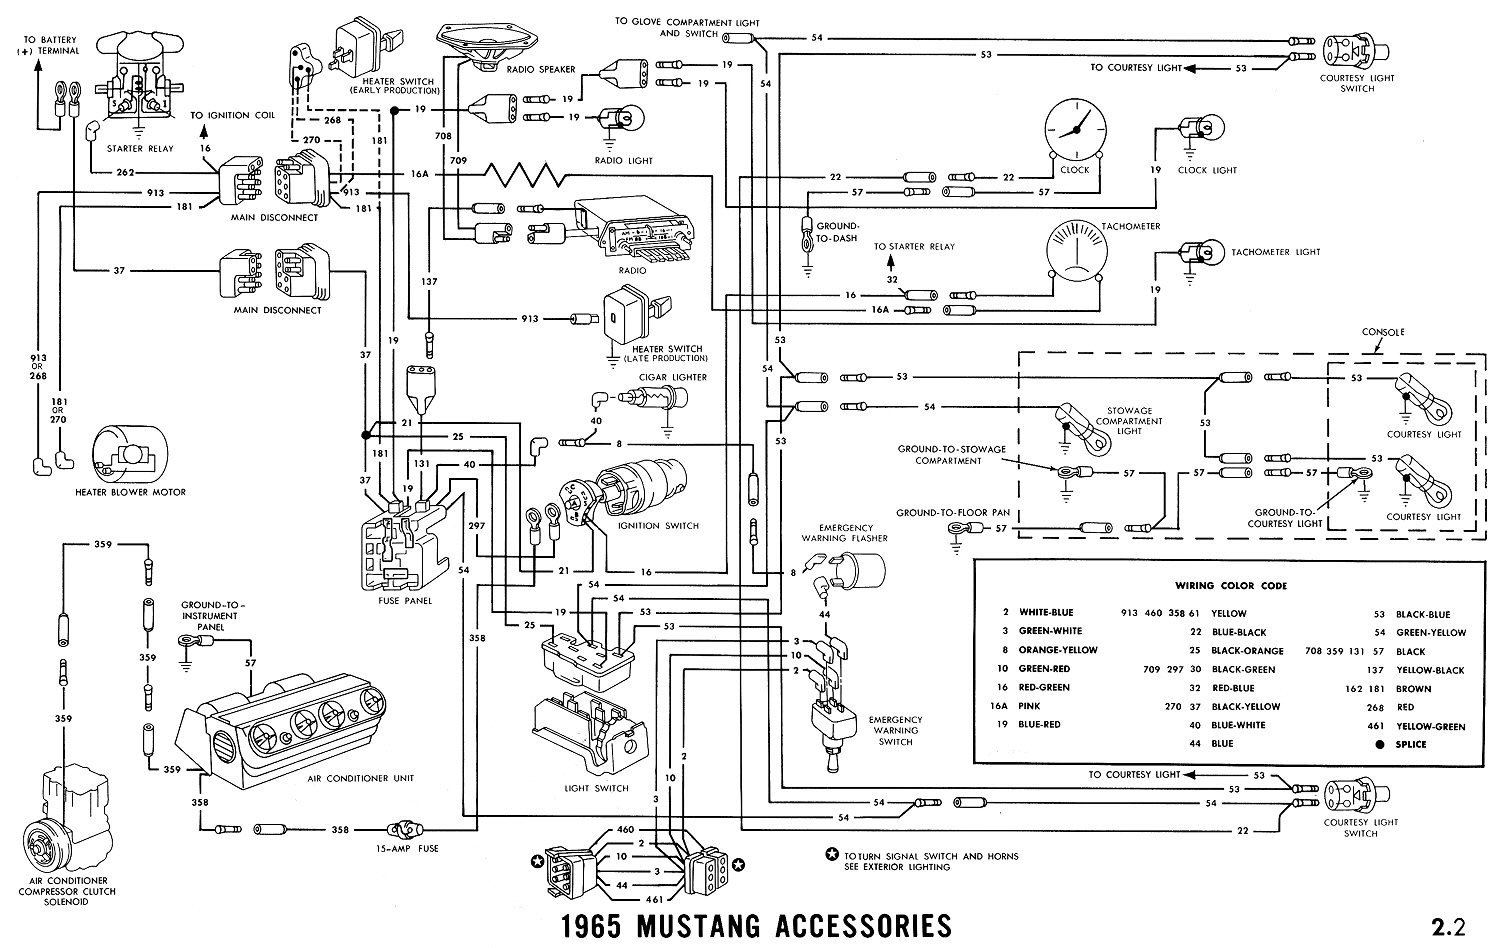 1965i 1965 mustang wiring diagrams average joe restoration mustang wiring harness diagram at gsmx.co